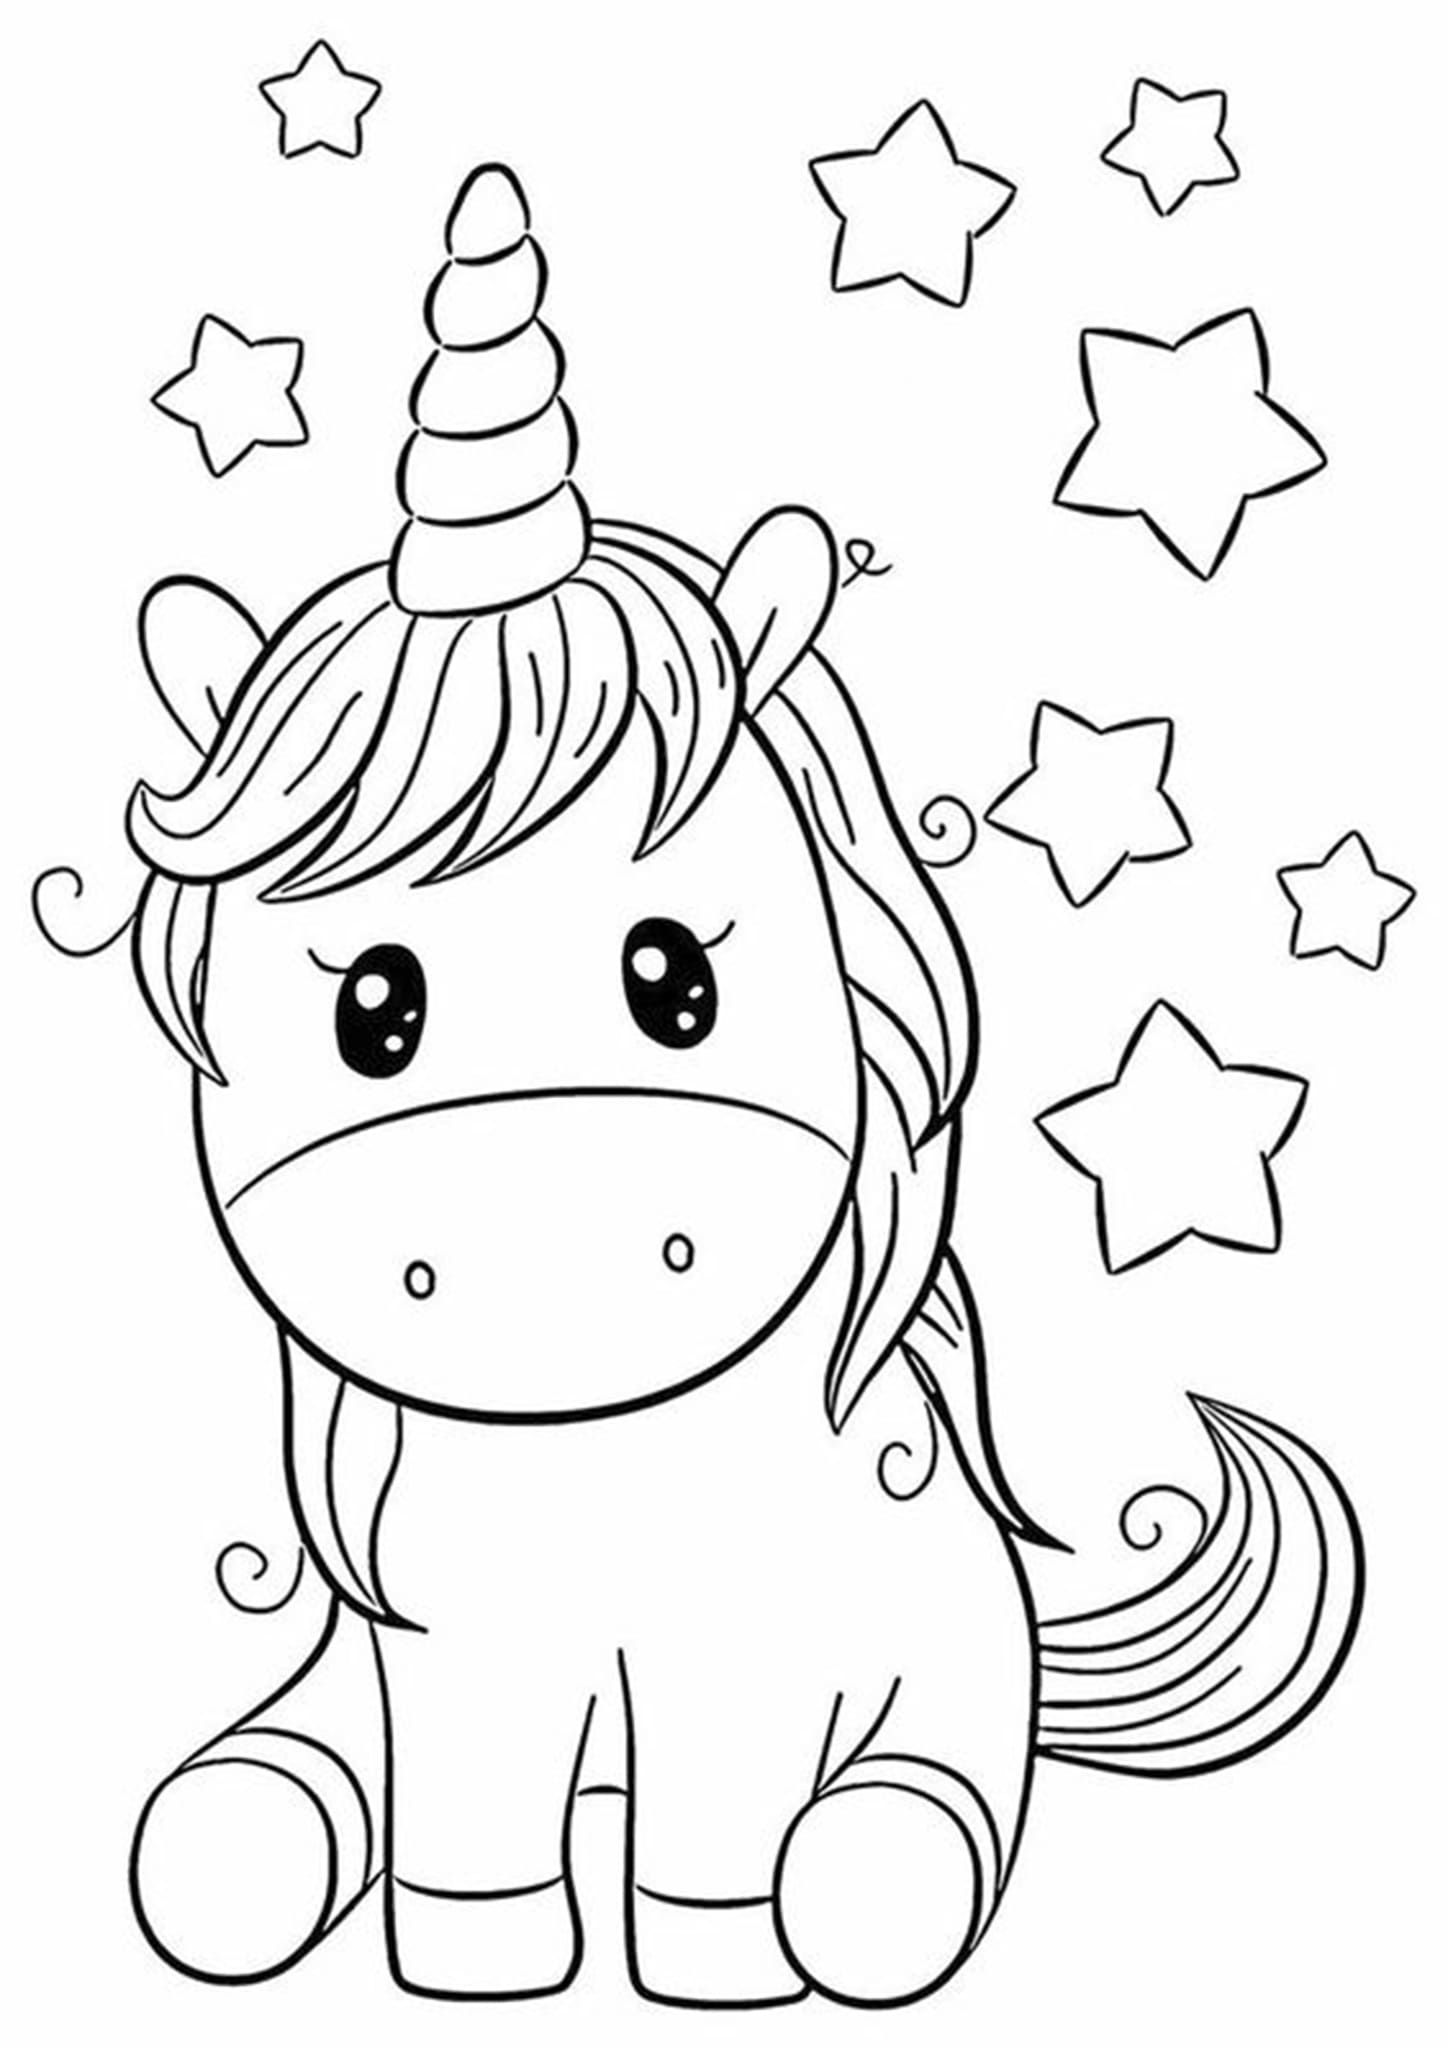 free baby animal coloring pages get this coloring pages of cute animal for kids agrj7 pages baby coloring free animal